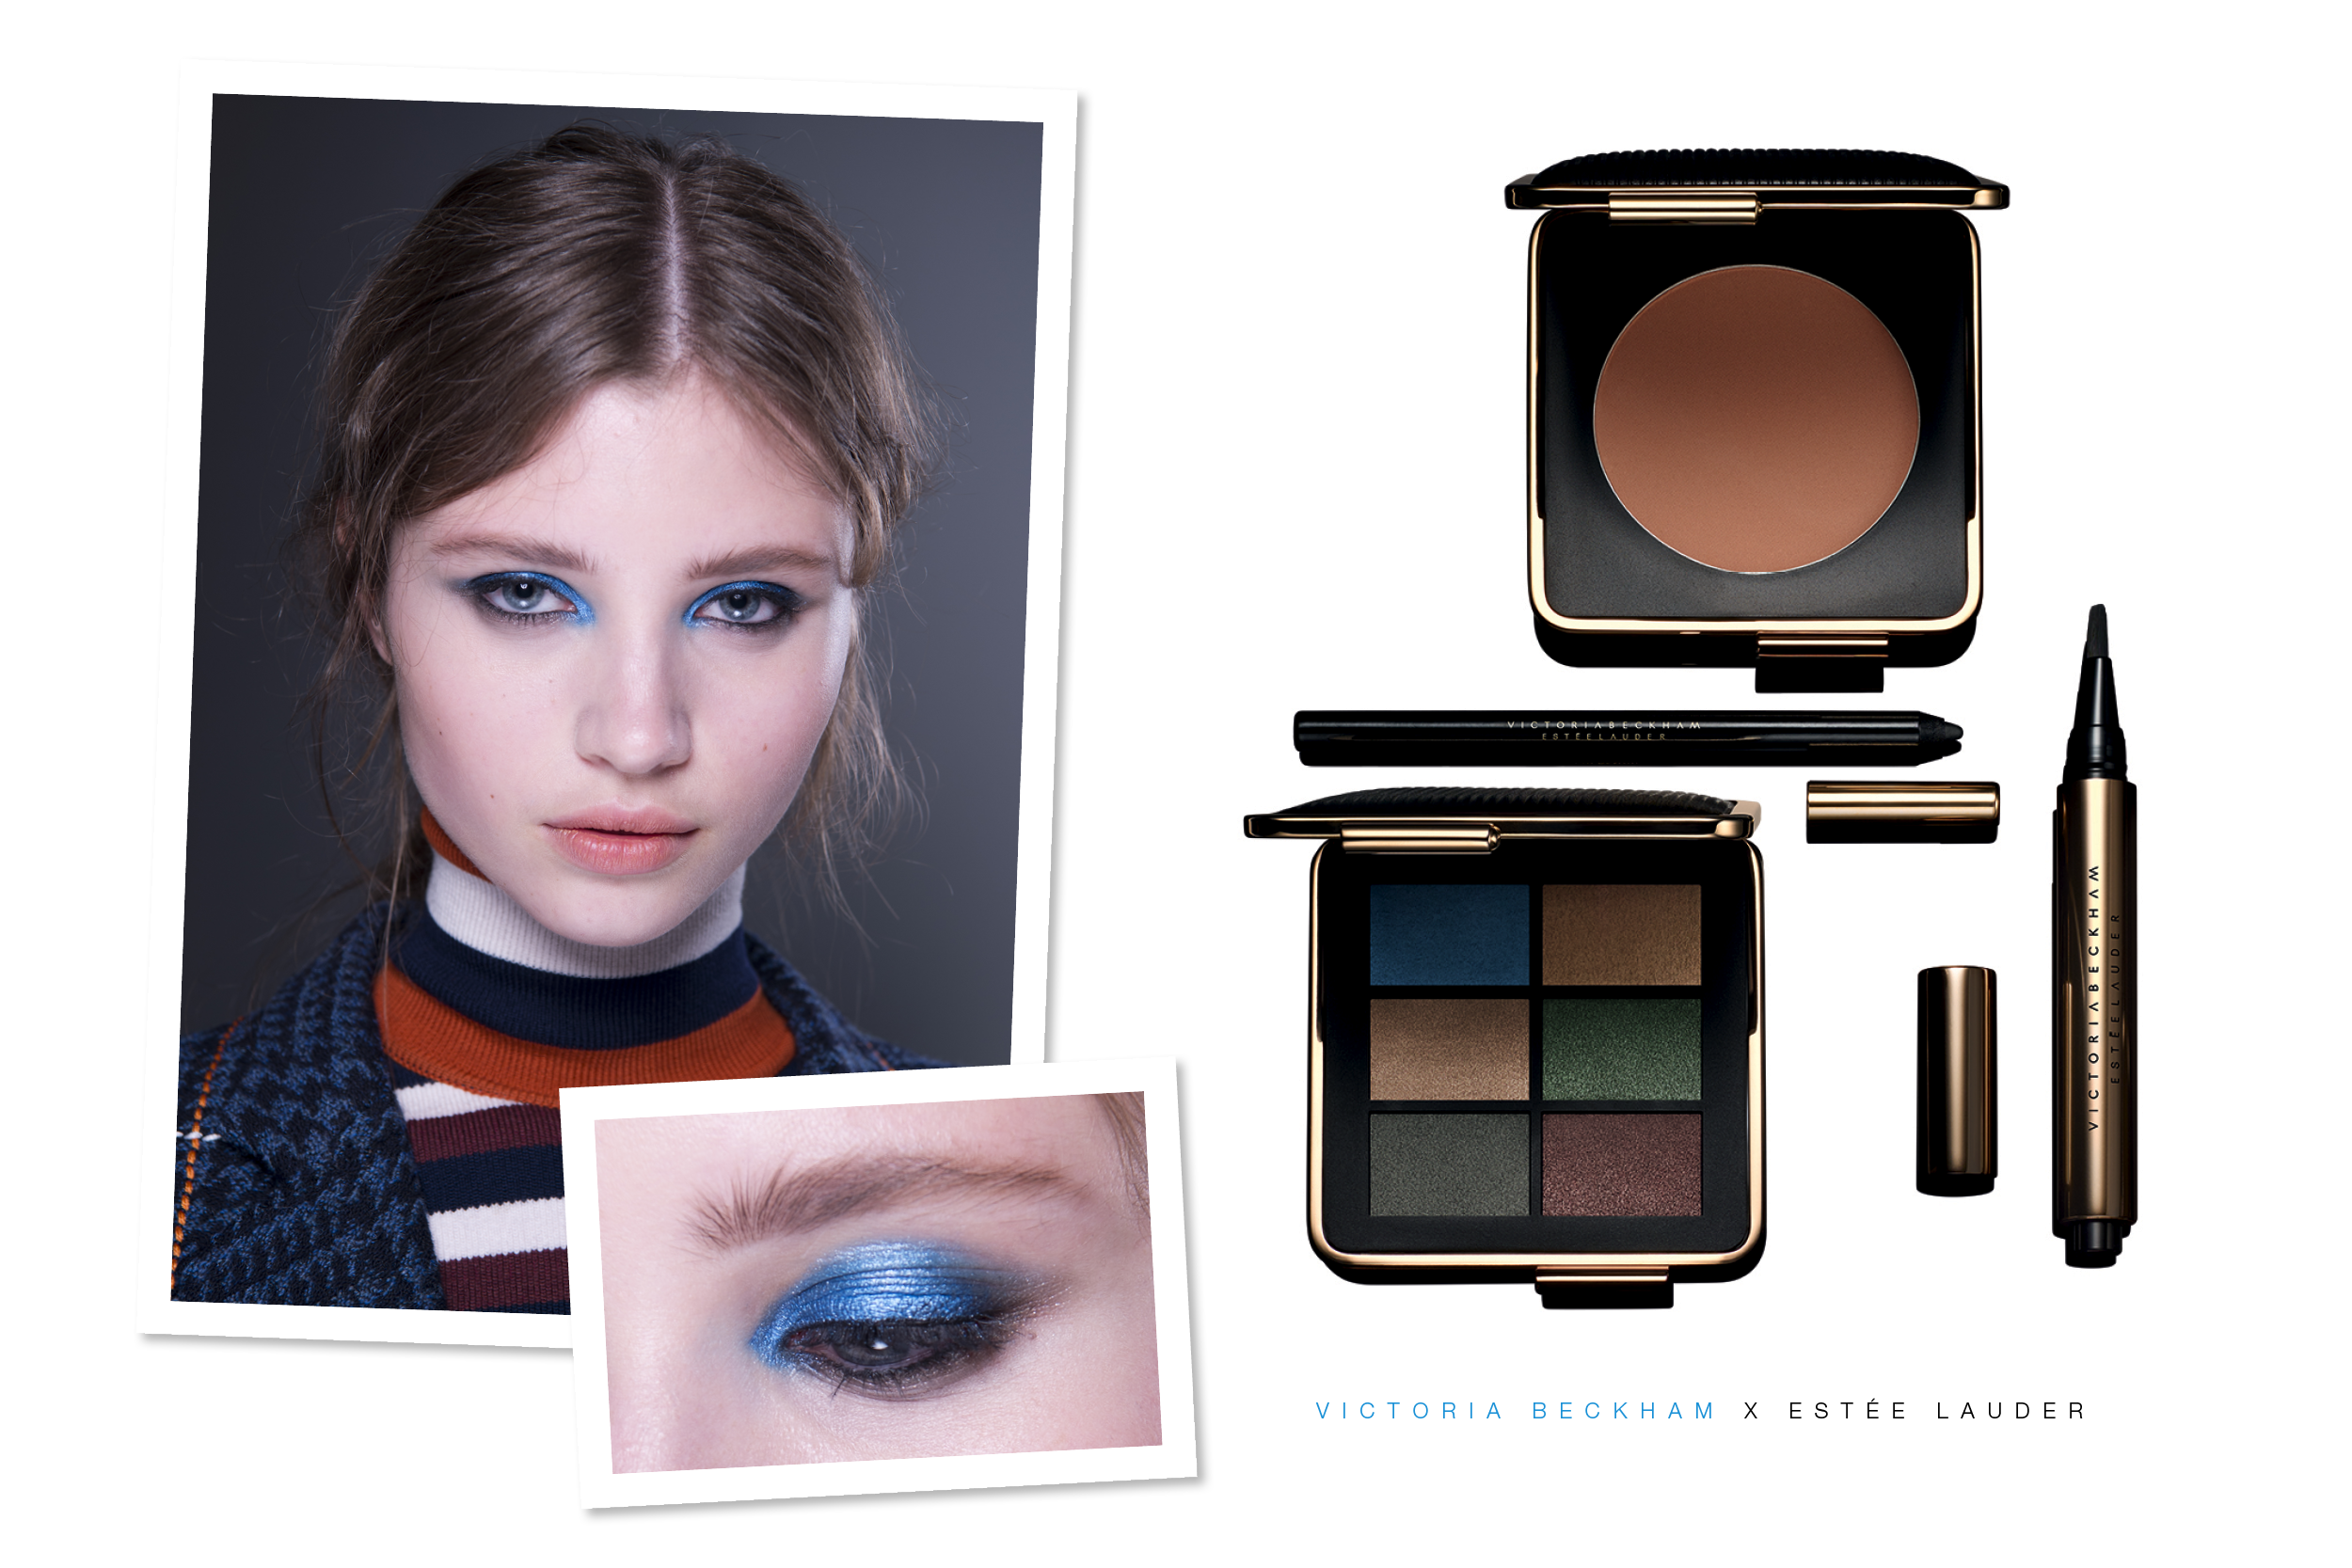 Victoria Beckham Make-up Estée Lauder / Foxycheeks